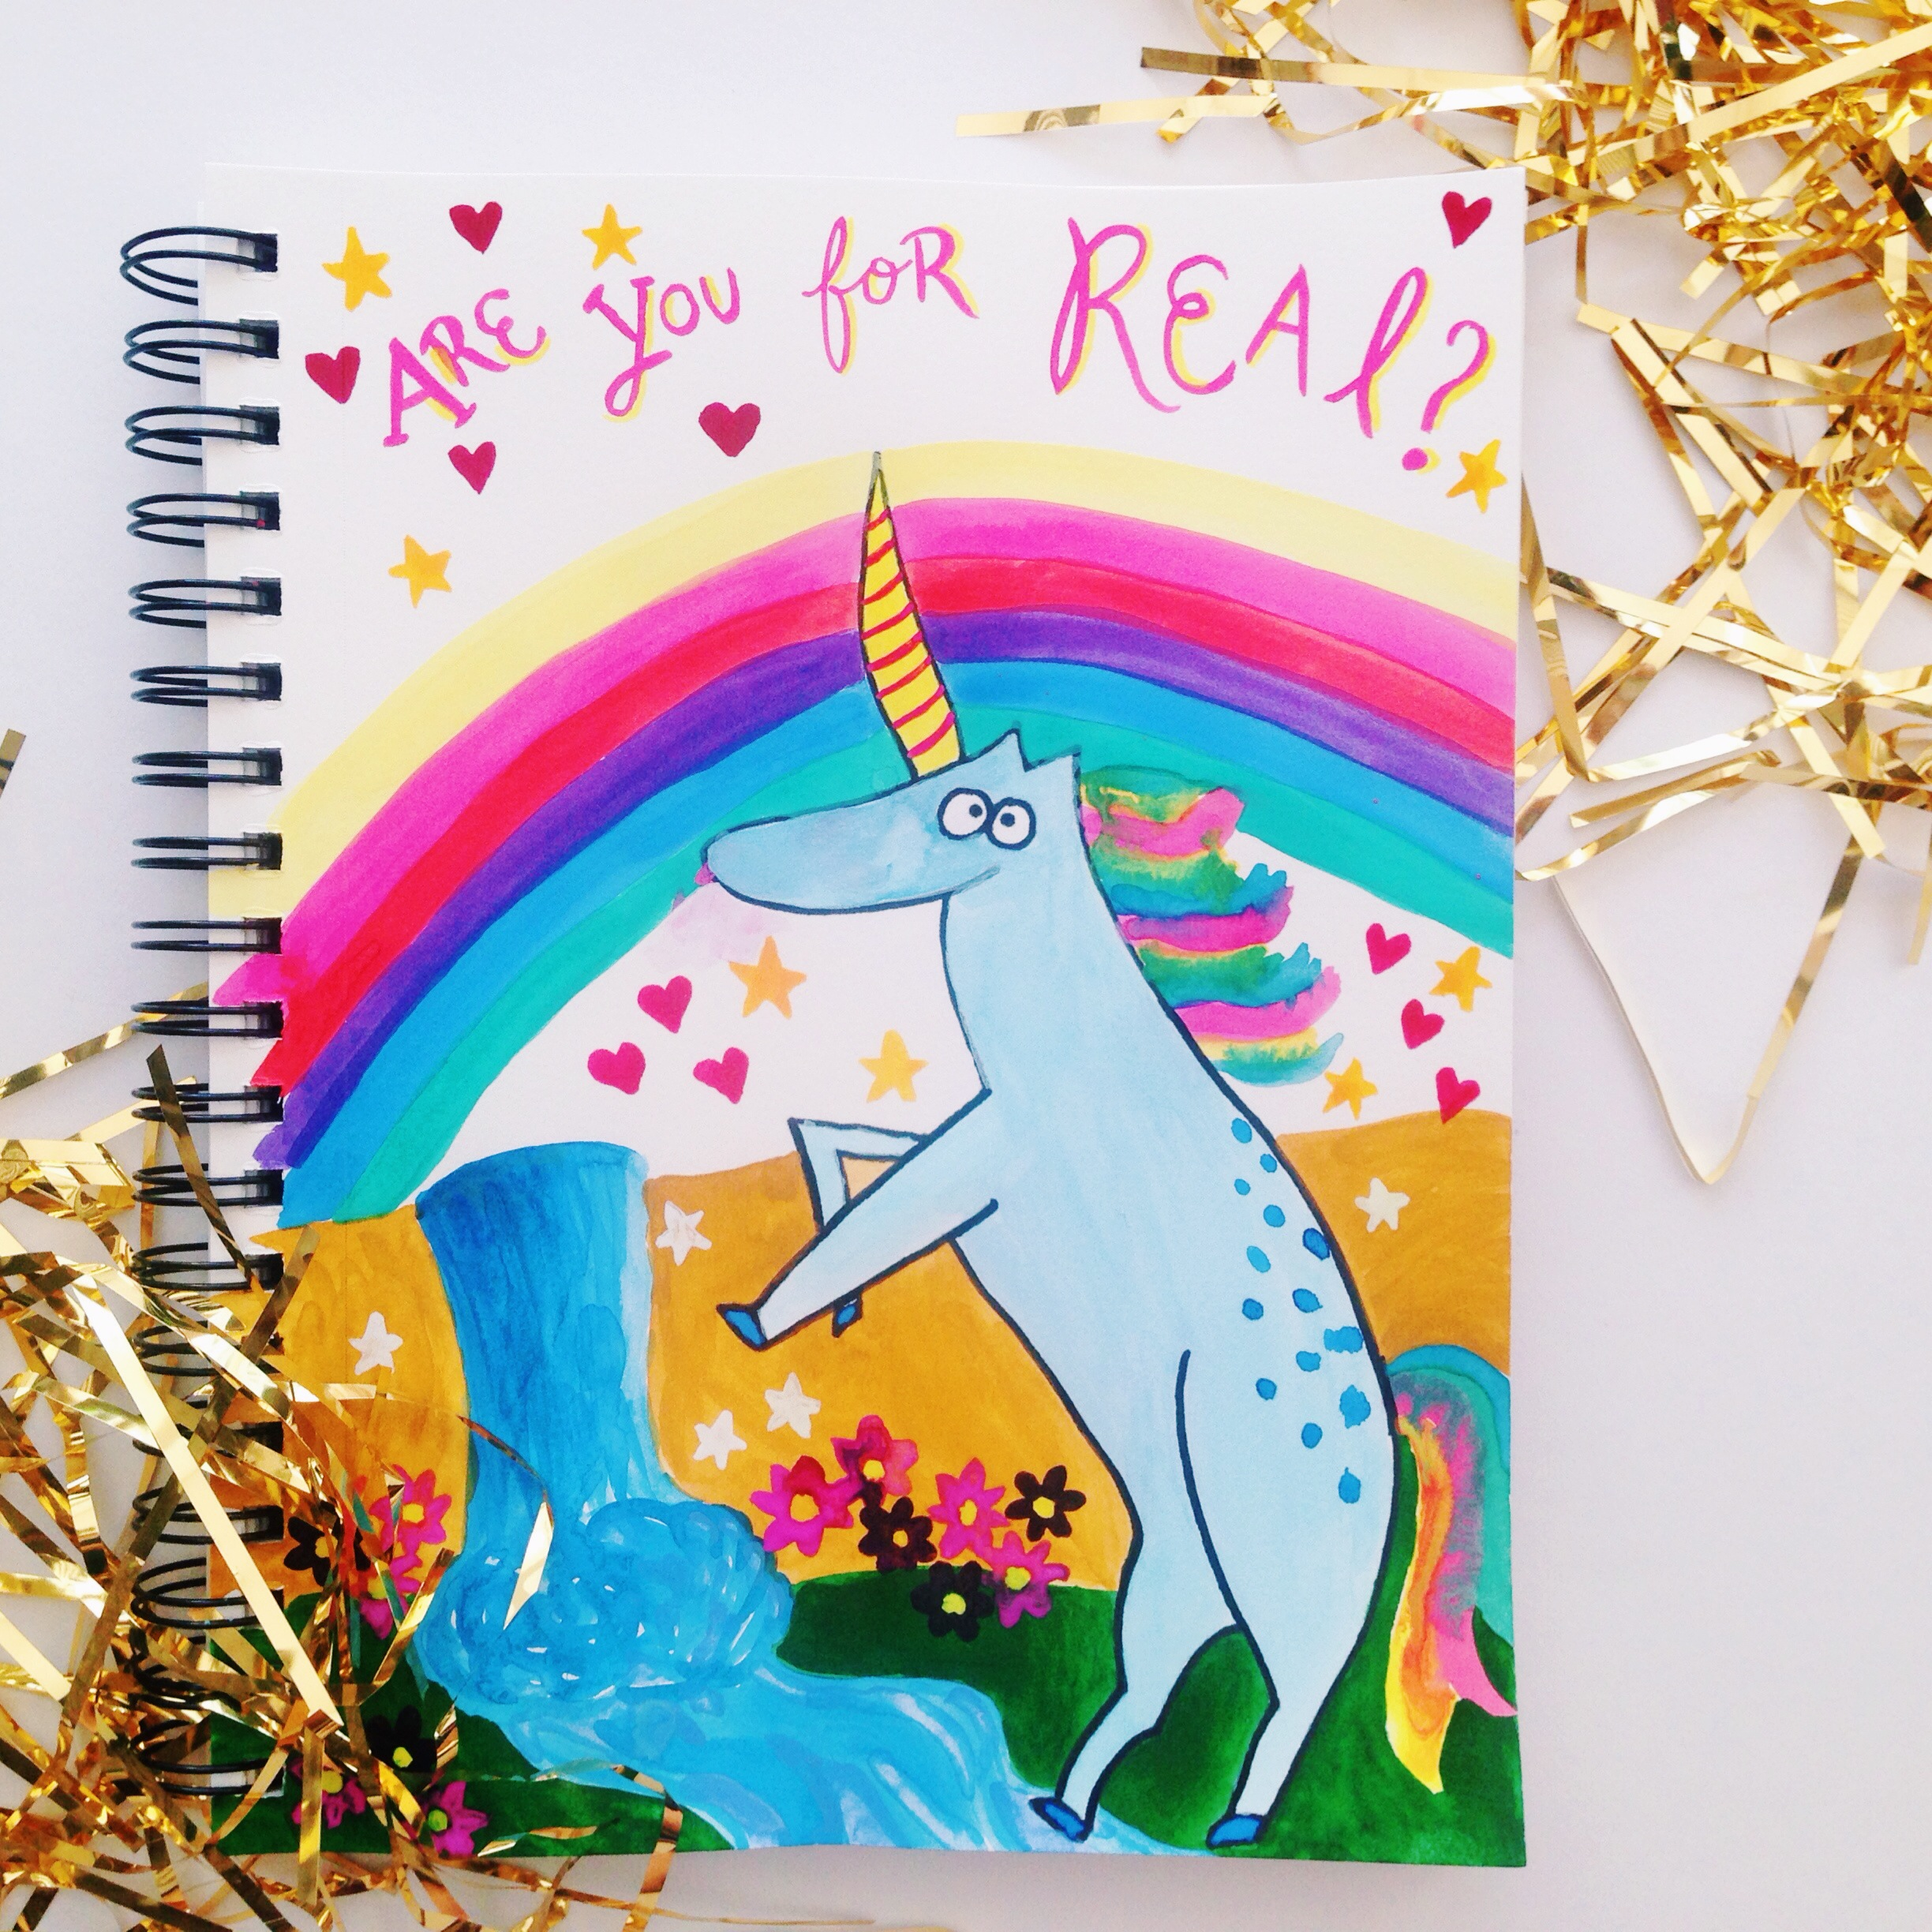 Real Life Unicorns • Your Biggest Fan, Grace